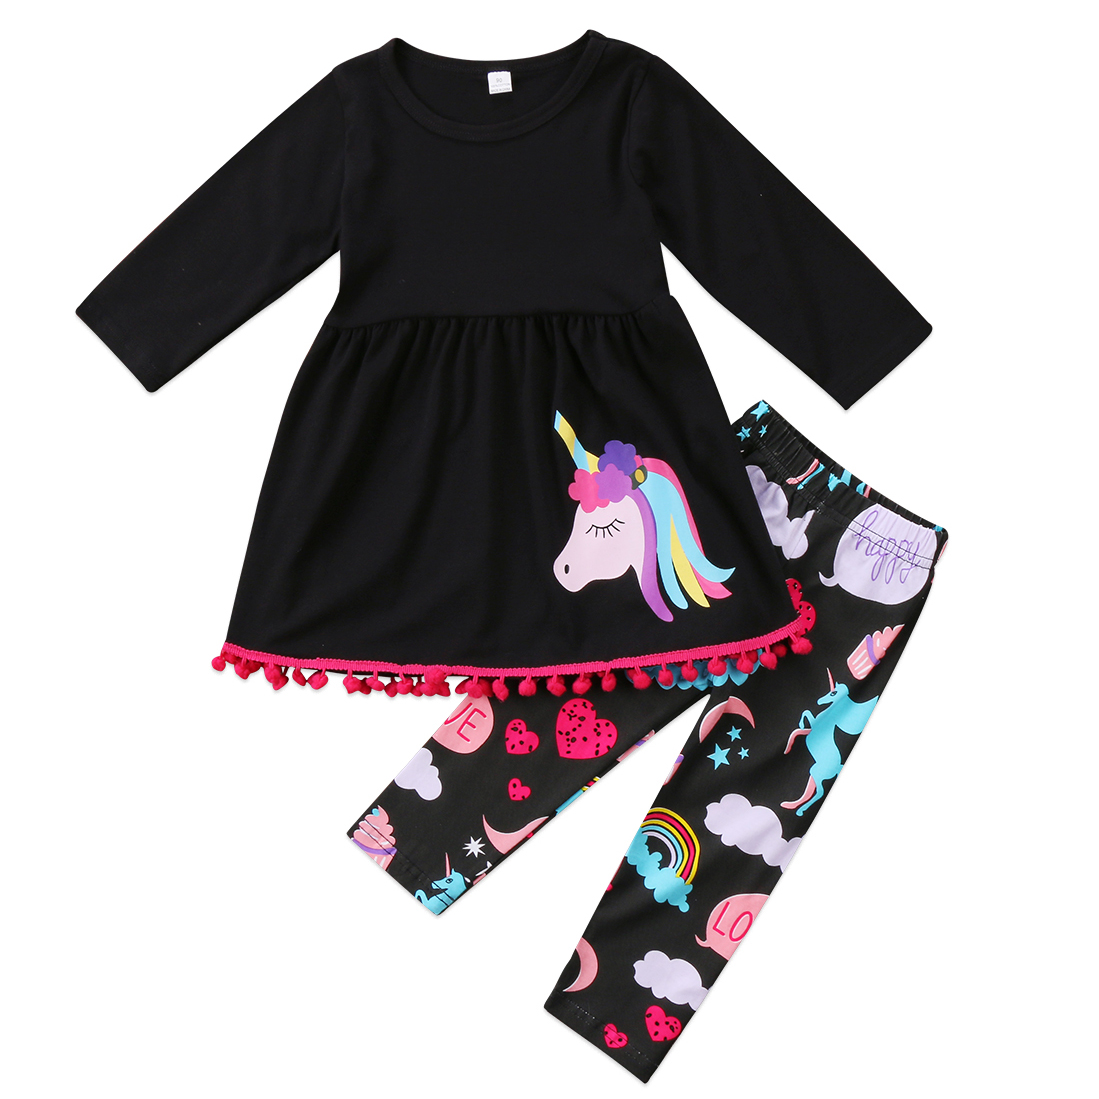 1 review of 4 Kids Clothes Under Ten Dollars